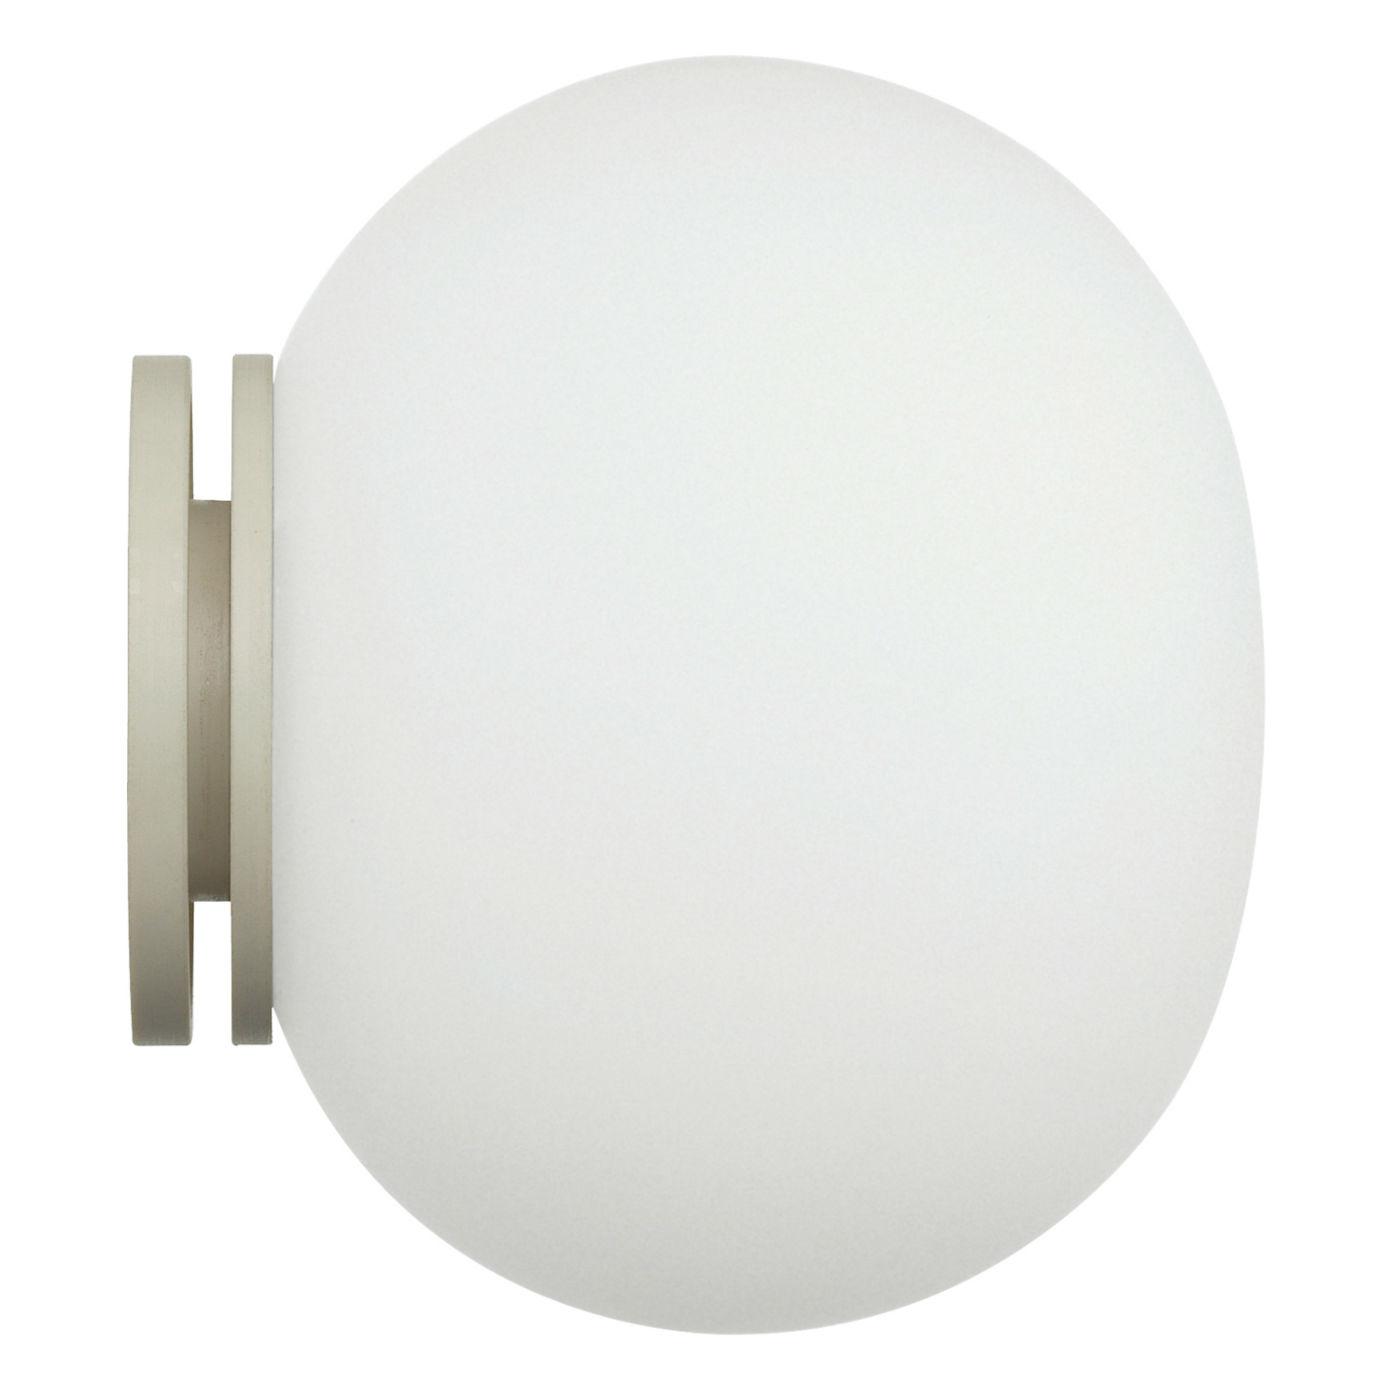 Glo Ball Mini C/W Applique/soffito 11,2cm G9 20W - bianco opale